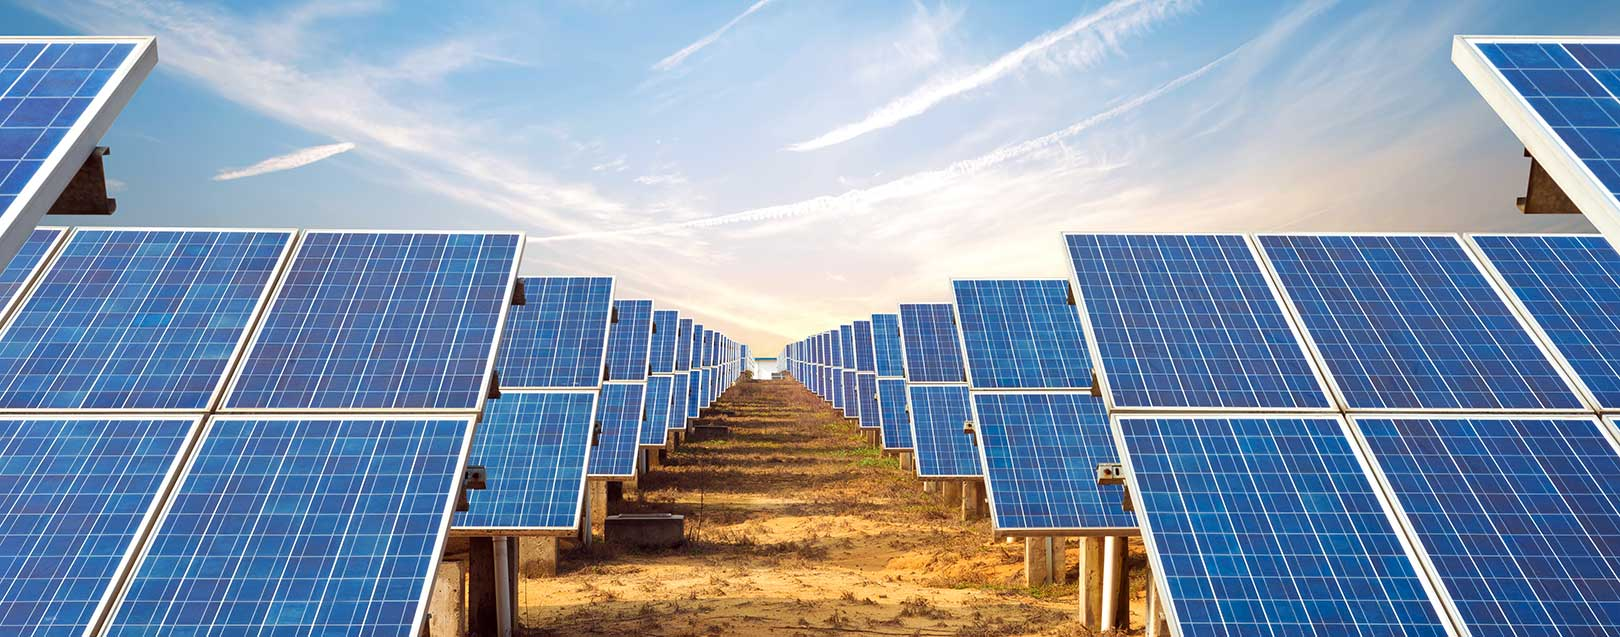 Solar generation capacity to cross 20,000 MW in next 15 months